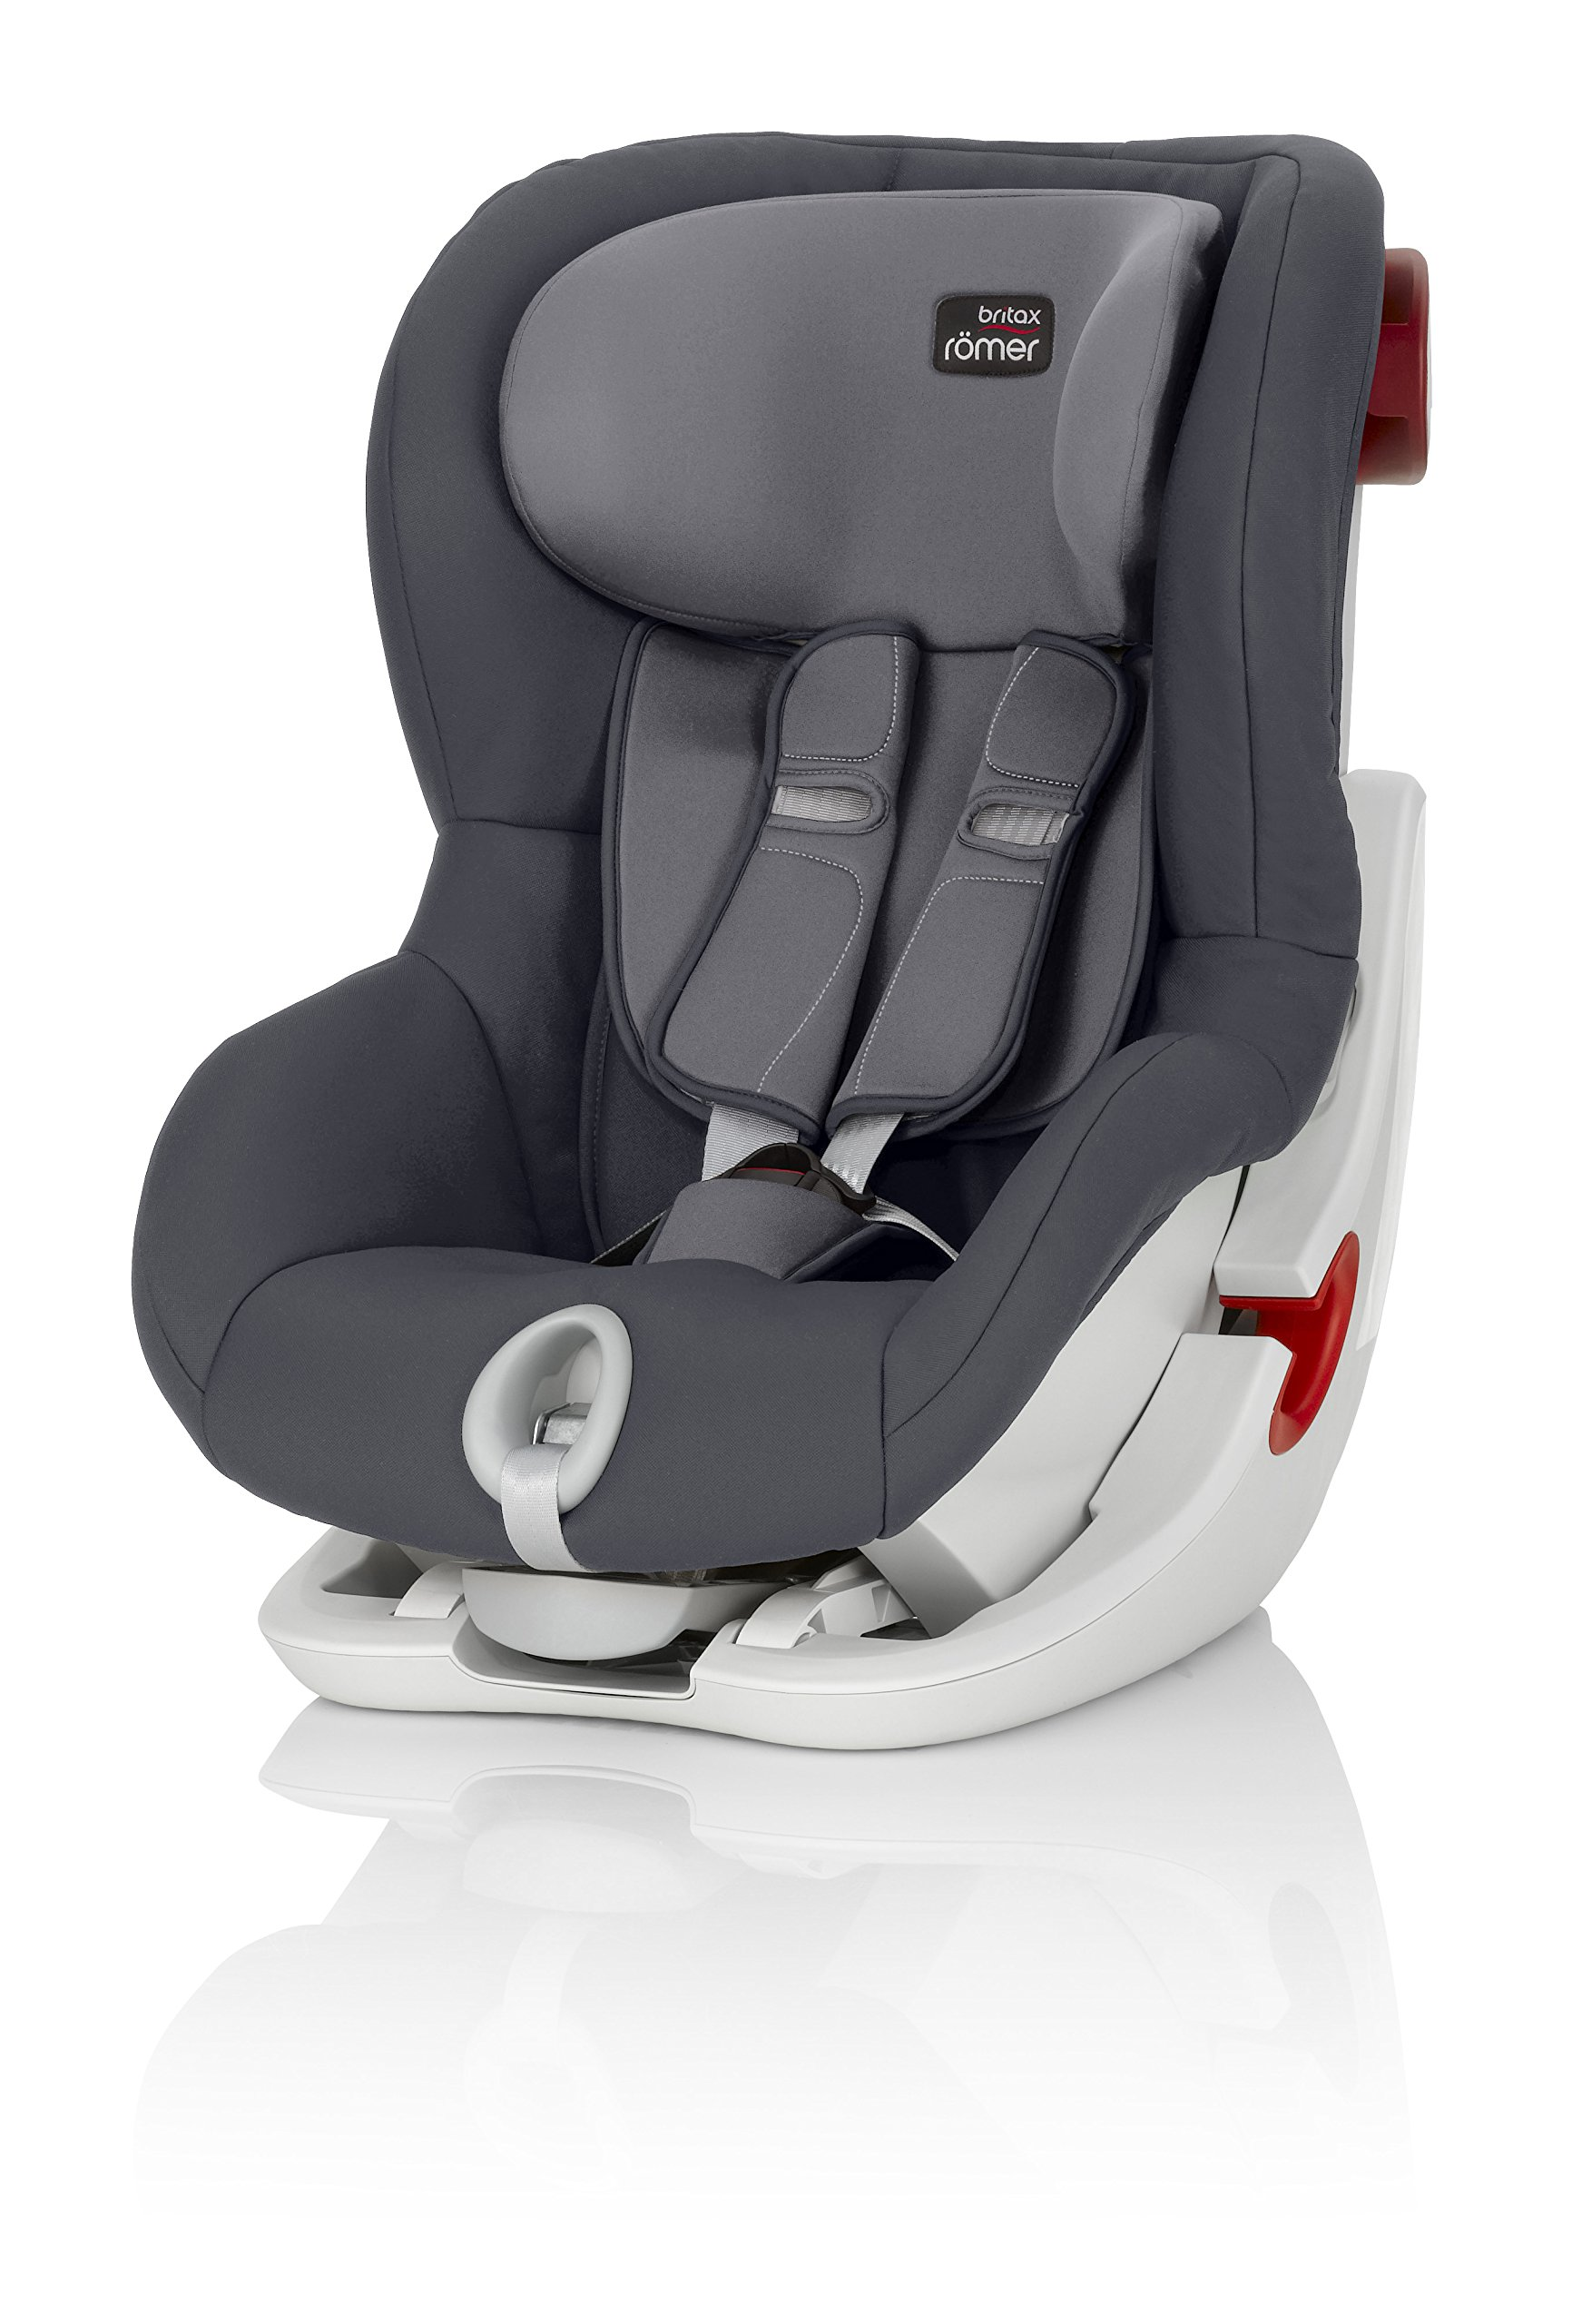 Britax Römer King II Group 1 (9-18kg) Car Seat - Storm Grey  Easy installation - with tilting seat and patented seat belt tensioning system Optimum protection - performance chest pads, deep, padded side wings 1